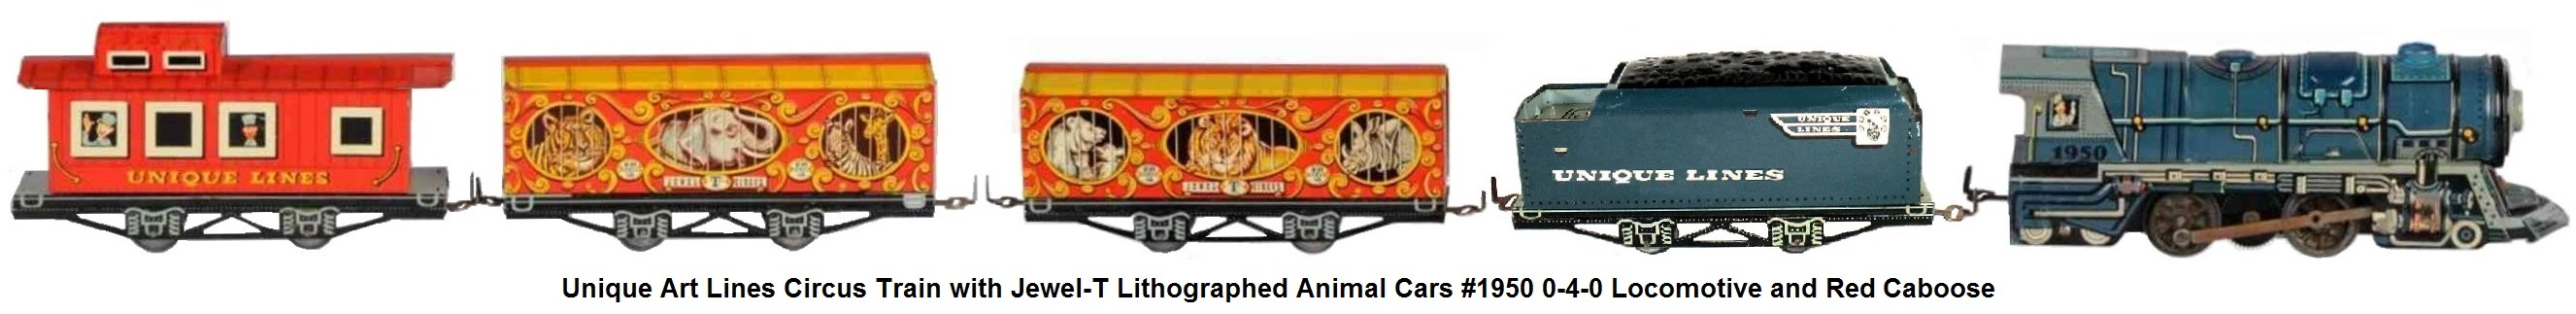 Unique Lines tinplate lithographed 'O' gauge Circus Train set with #1950 locomotive and tender, two animal 